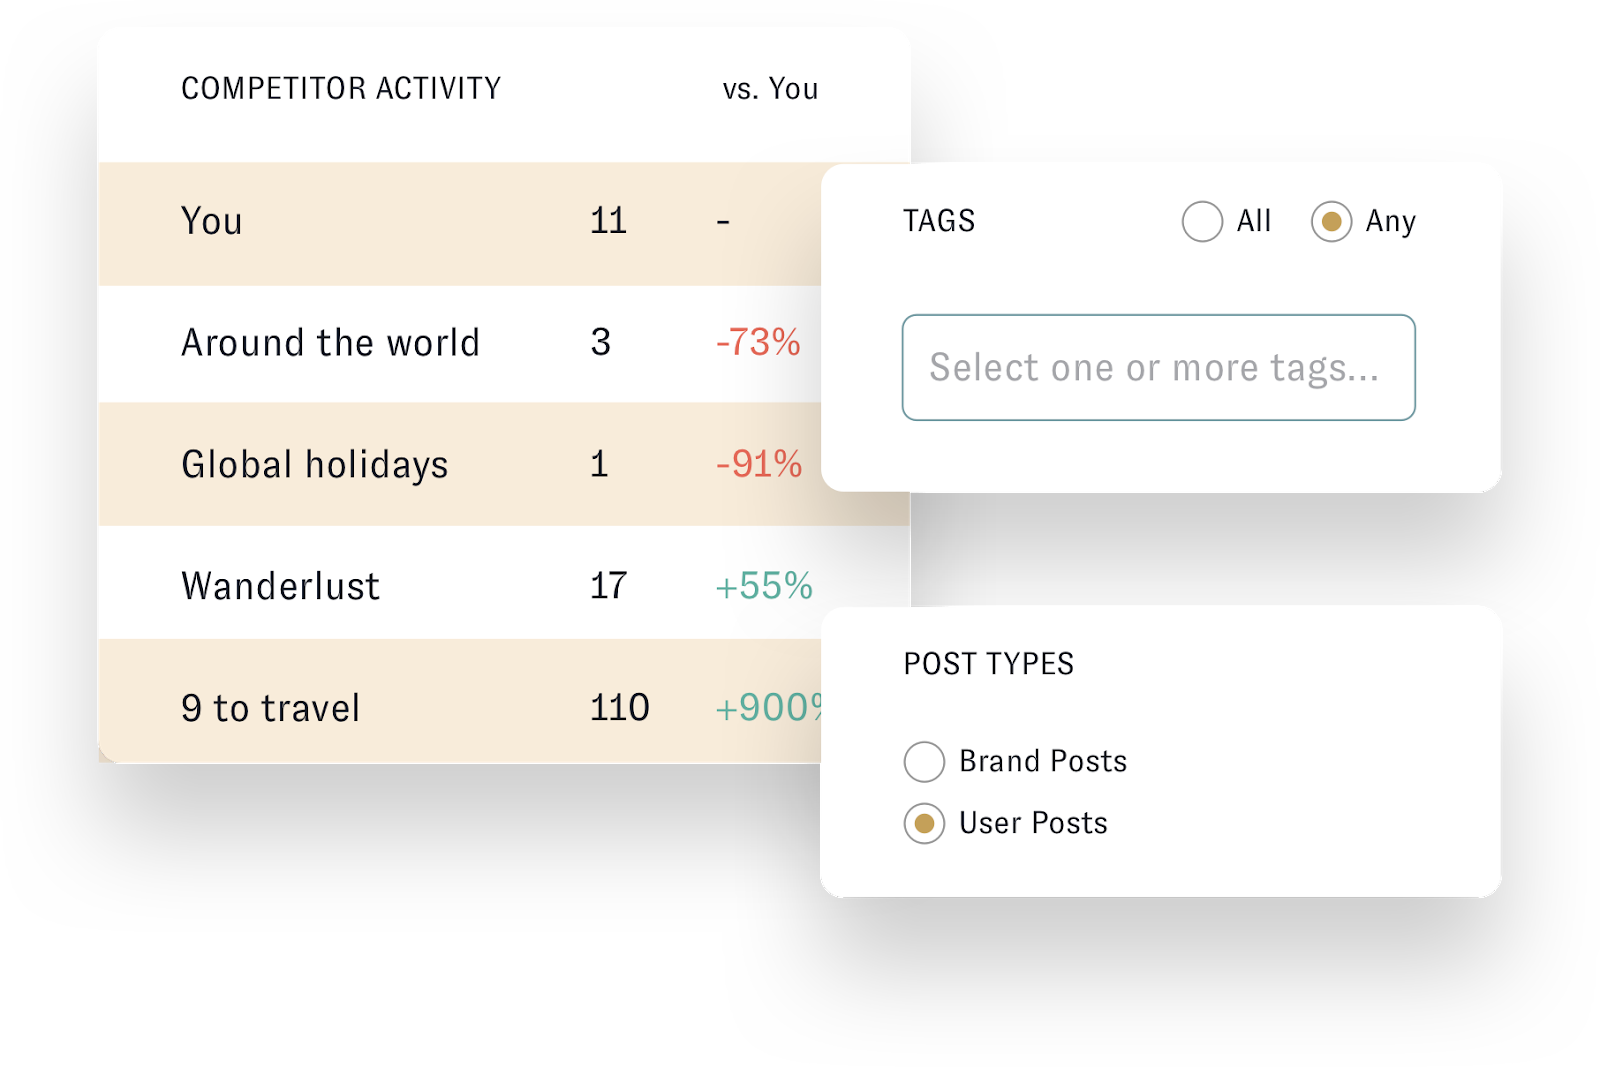 "Nuvi Analyze can show a company insights into their competitor's social media performance. This specific example shows a company, ""You"", compared to four competitors. The chart says You=11, Around the world=3, -73%, Global Holidays= 1,-91%, Wanderlust=17, +55%, and 9 to travel 110, +900%. Analyze also lets you choose whether to analyze brand or user posts and create tags for any and all content."